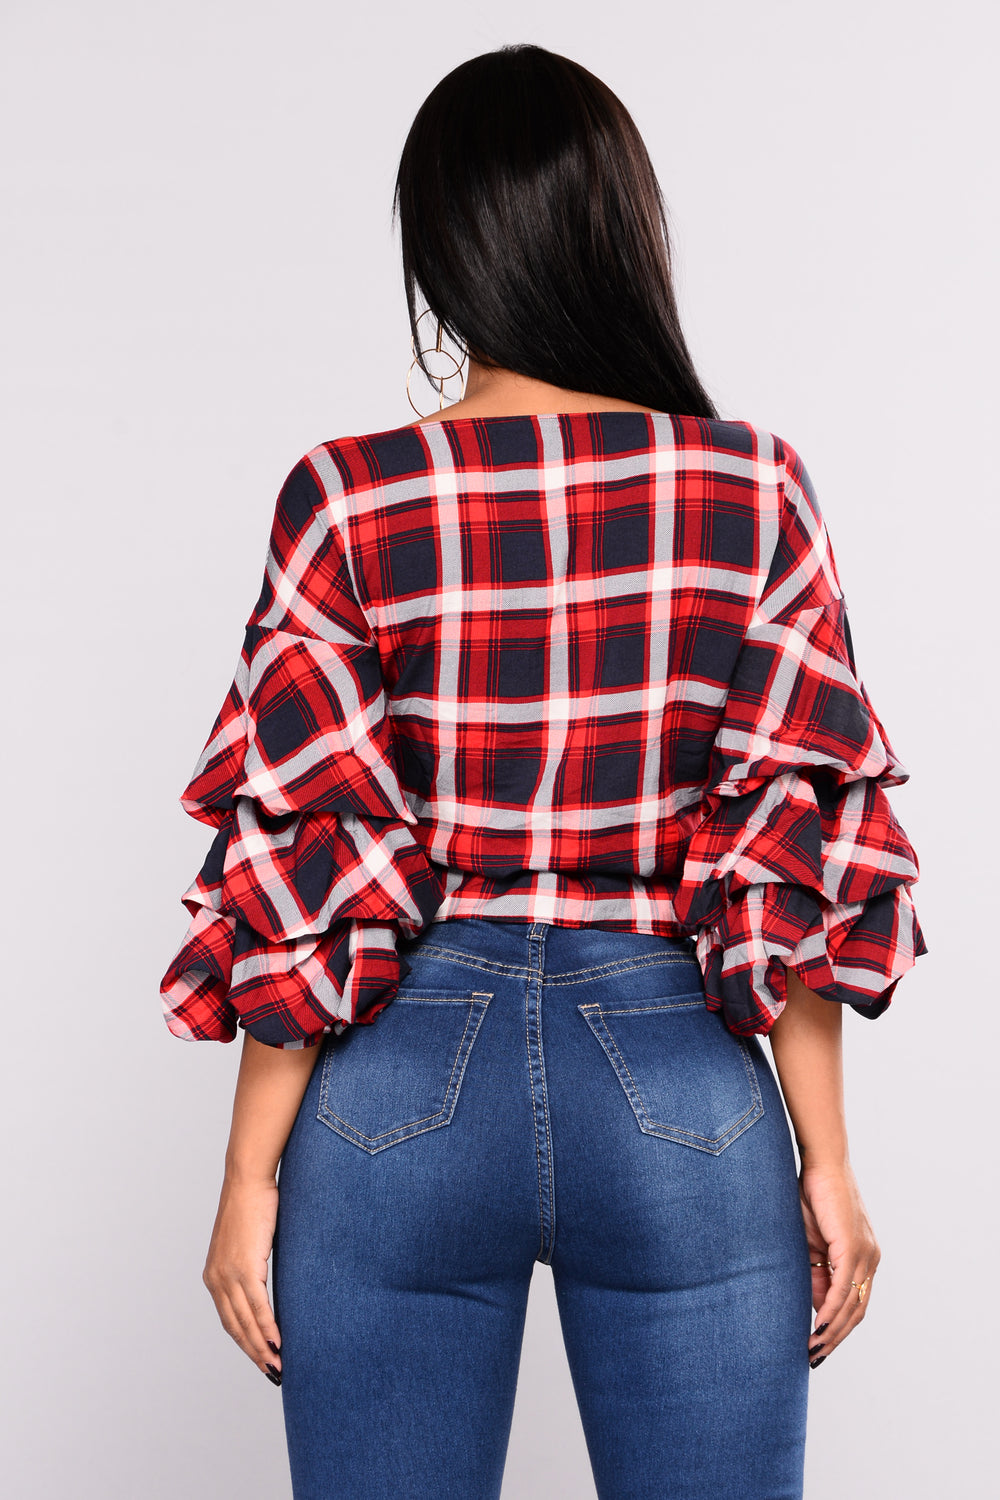 Plaid Red Flat Shoes Under  Size